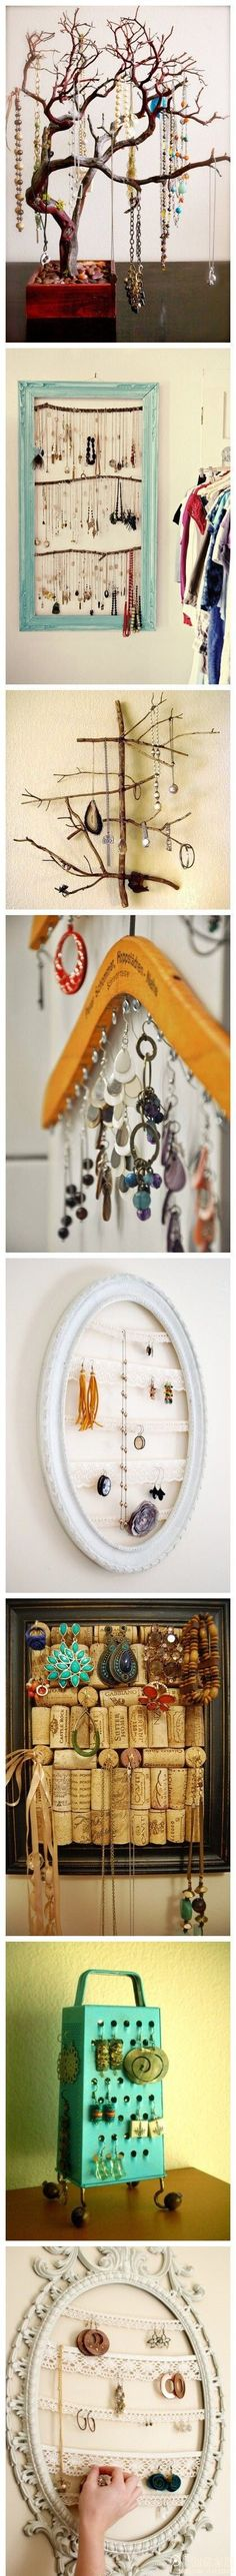 Fun DIY jewelry hangers I like the one made of a wooden coat hanger. #DIY jewelry. #DIY organize. #DIY #organize #jewelry #DIY #organize #necklace  #necklaces #DIY #organize #bracelets #DIY #organize #earrings  #DIY #organize #rings #organize #accessories